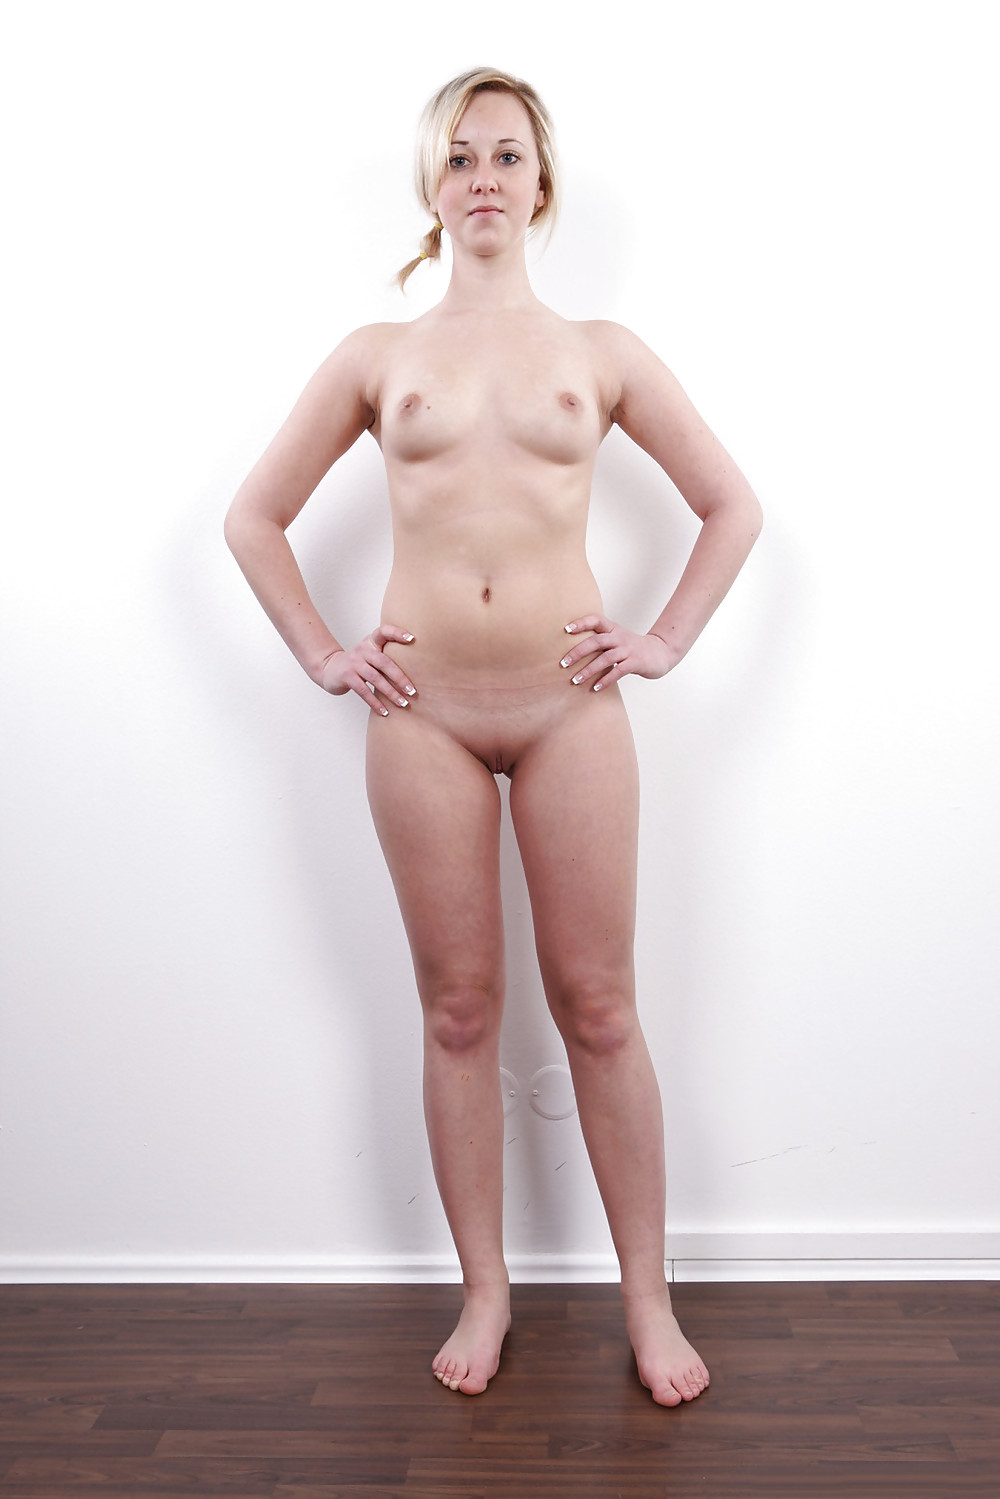 Standing nude with bush, nude harley